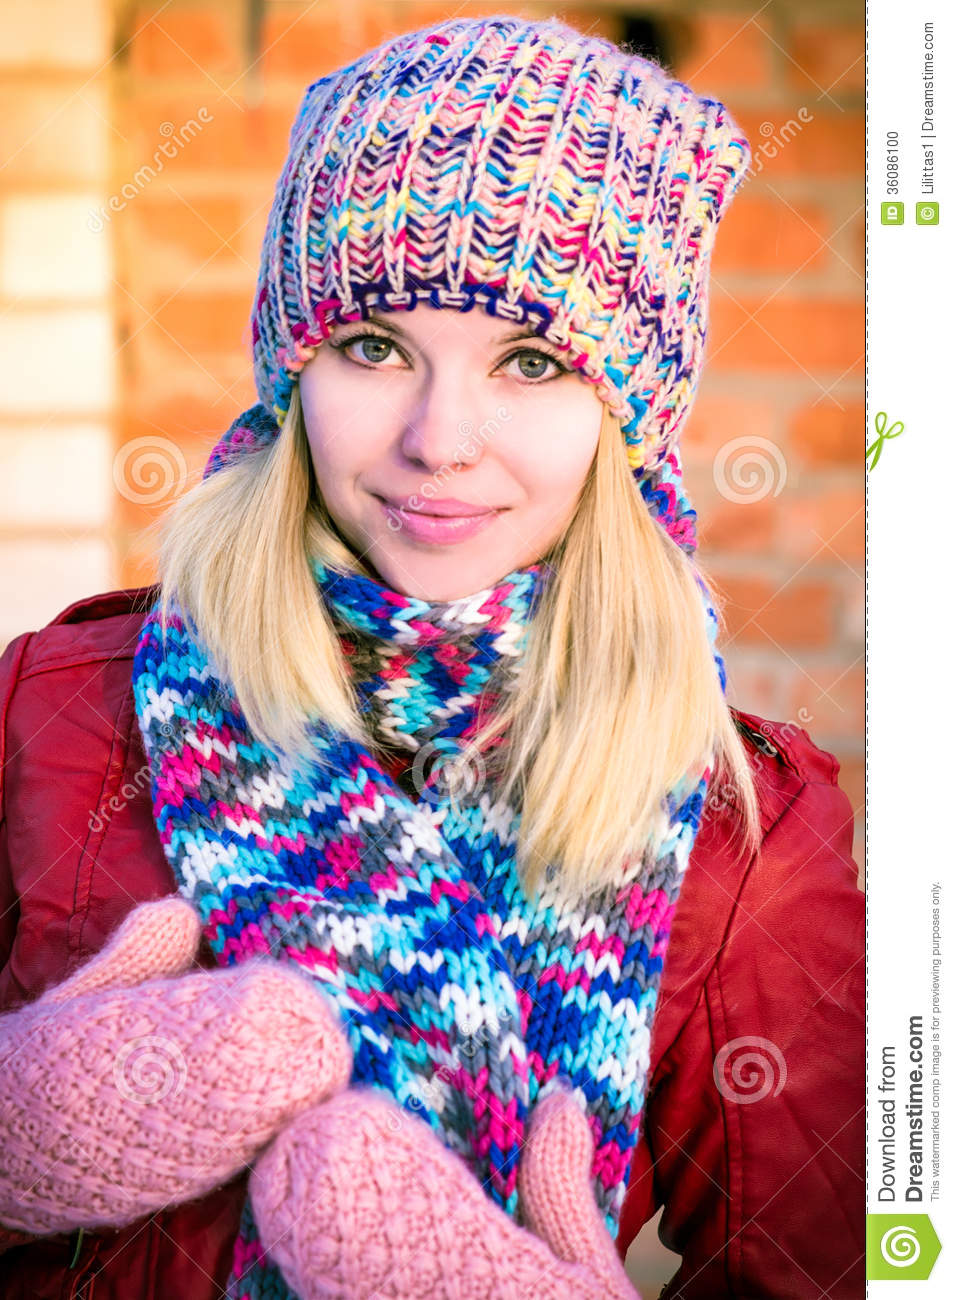 Young Woman Beautiful Happy Smiling Face Winter Time Stock Photo Image Of Lady Mittens 36086100